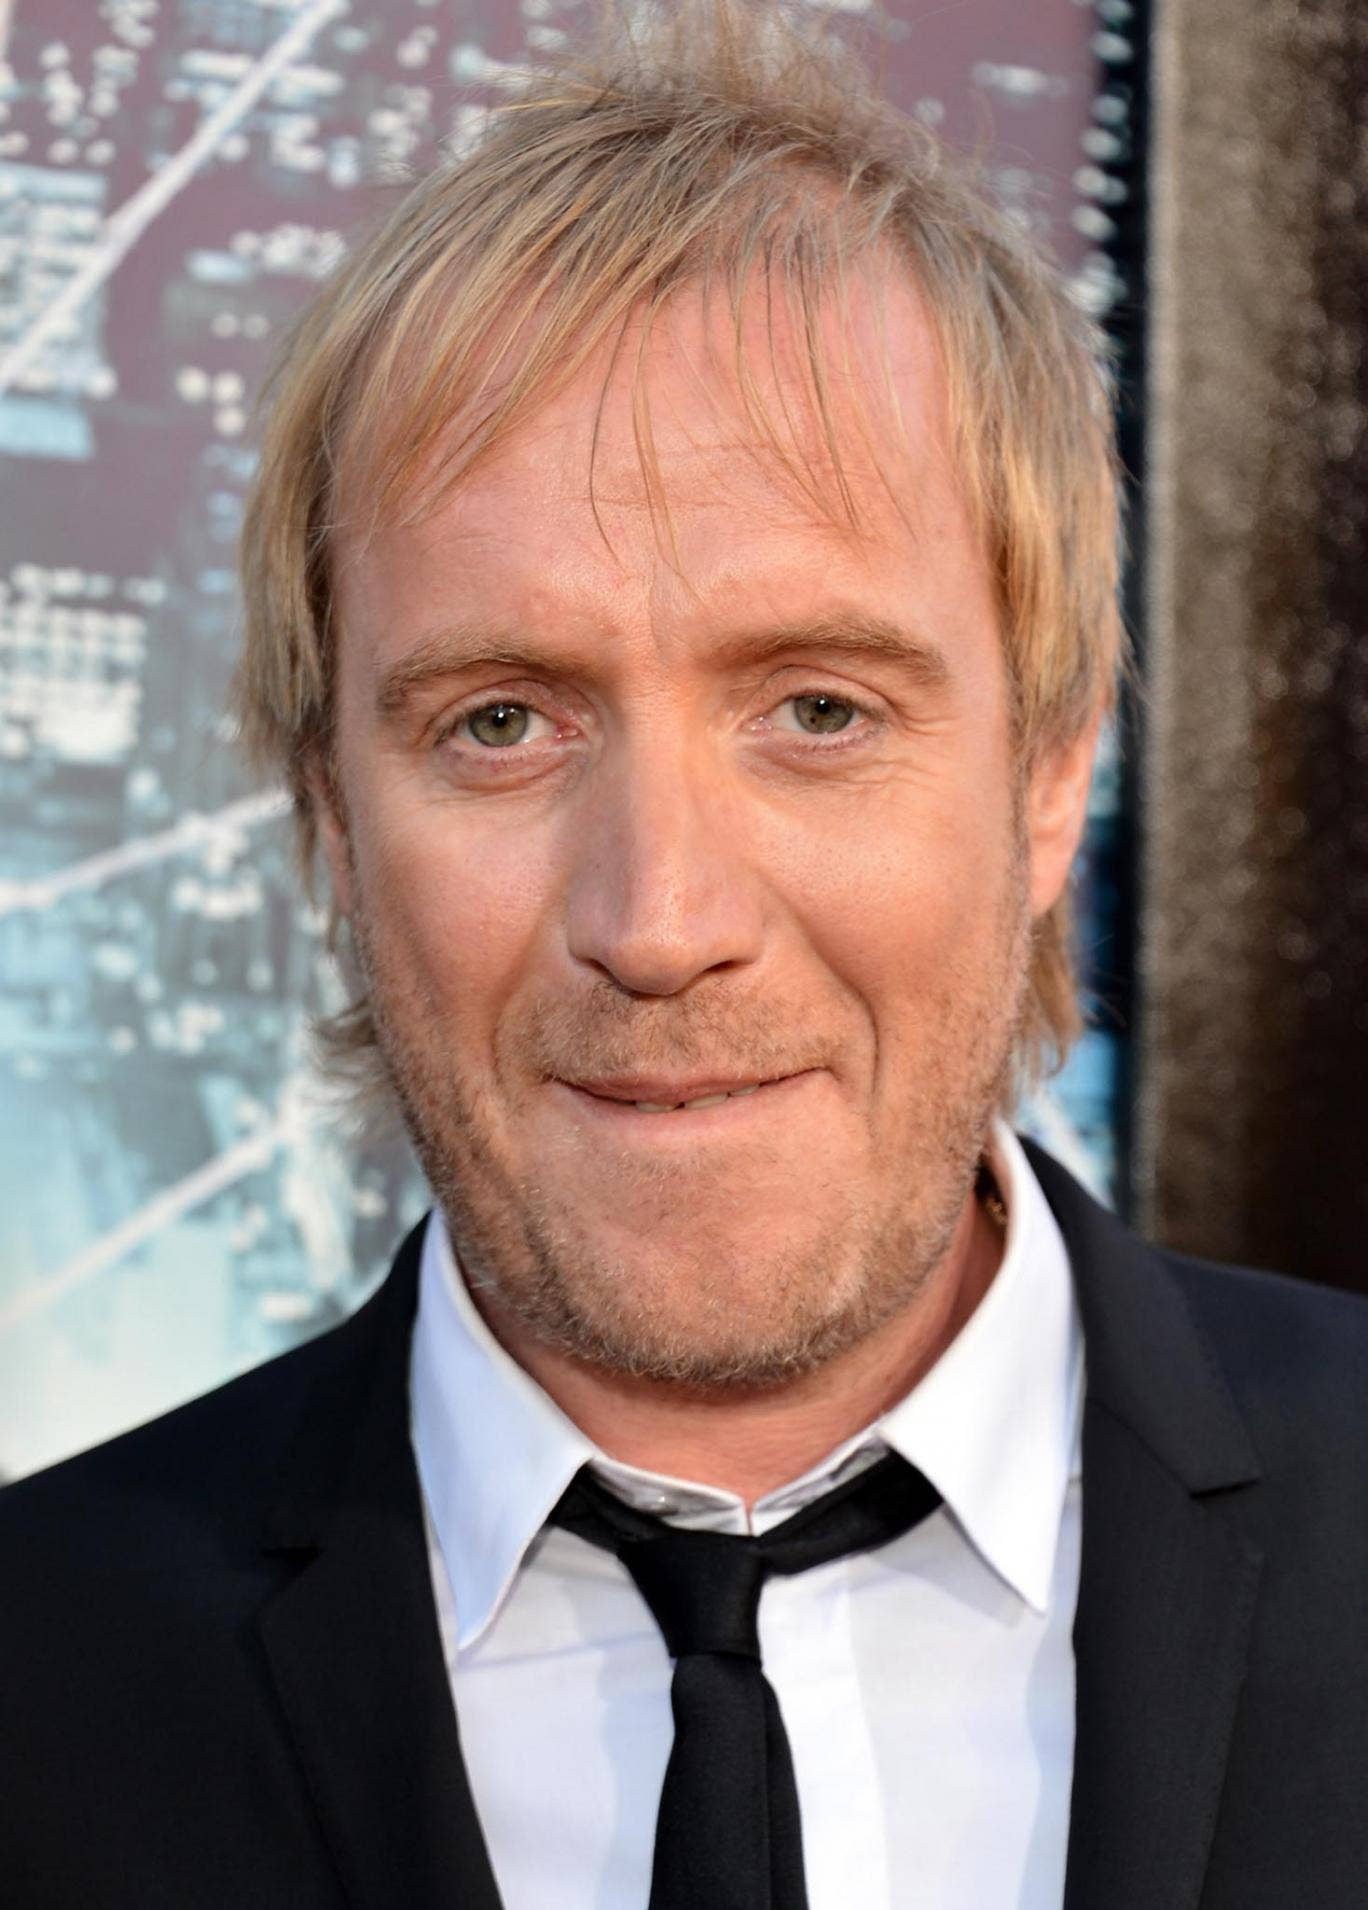 Welsh actor Rhys Ifans is to appear in a one-man show at the National Theatre